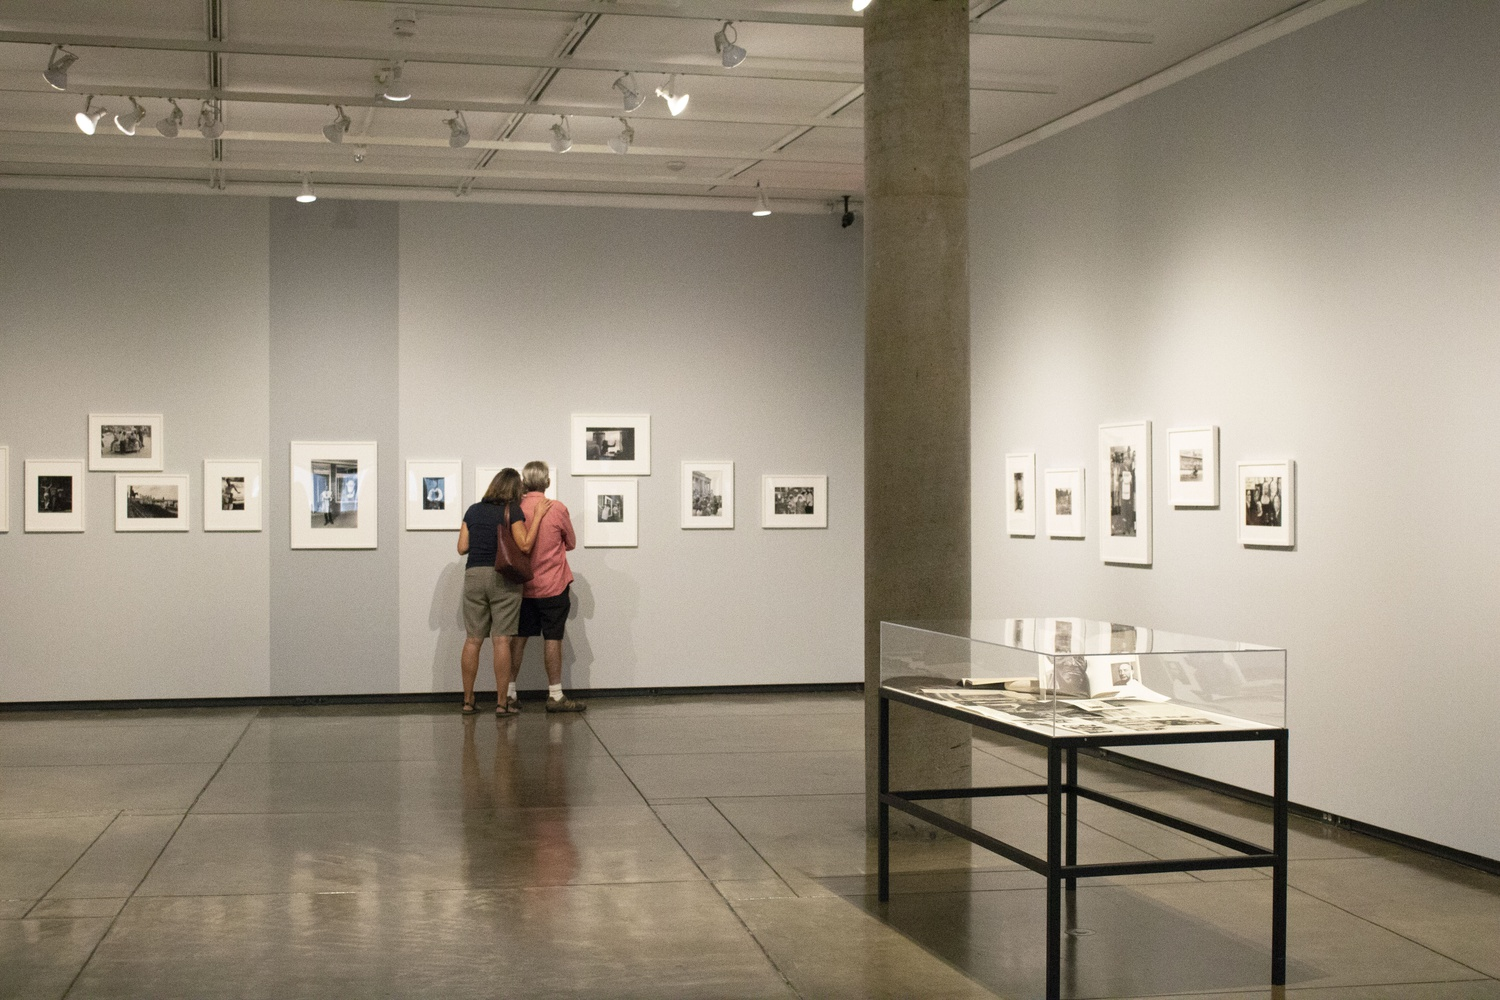 """Harvard's Sert Gallery will display the exhibit """"Time is Now: Photography and Social Change in James Baldwin's America"""" from Sept. 13 until Dec. 30."""